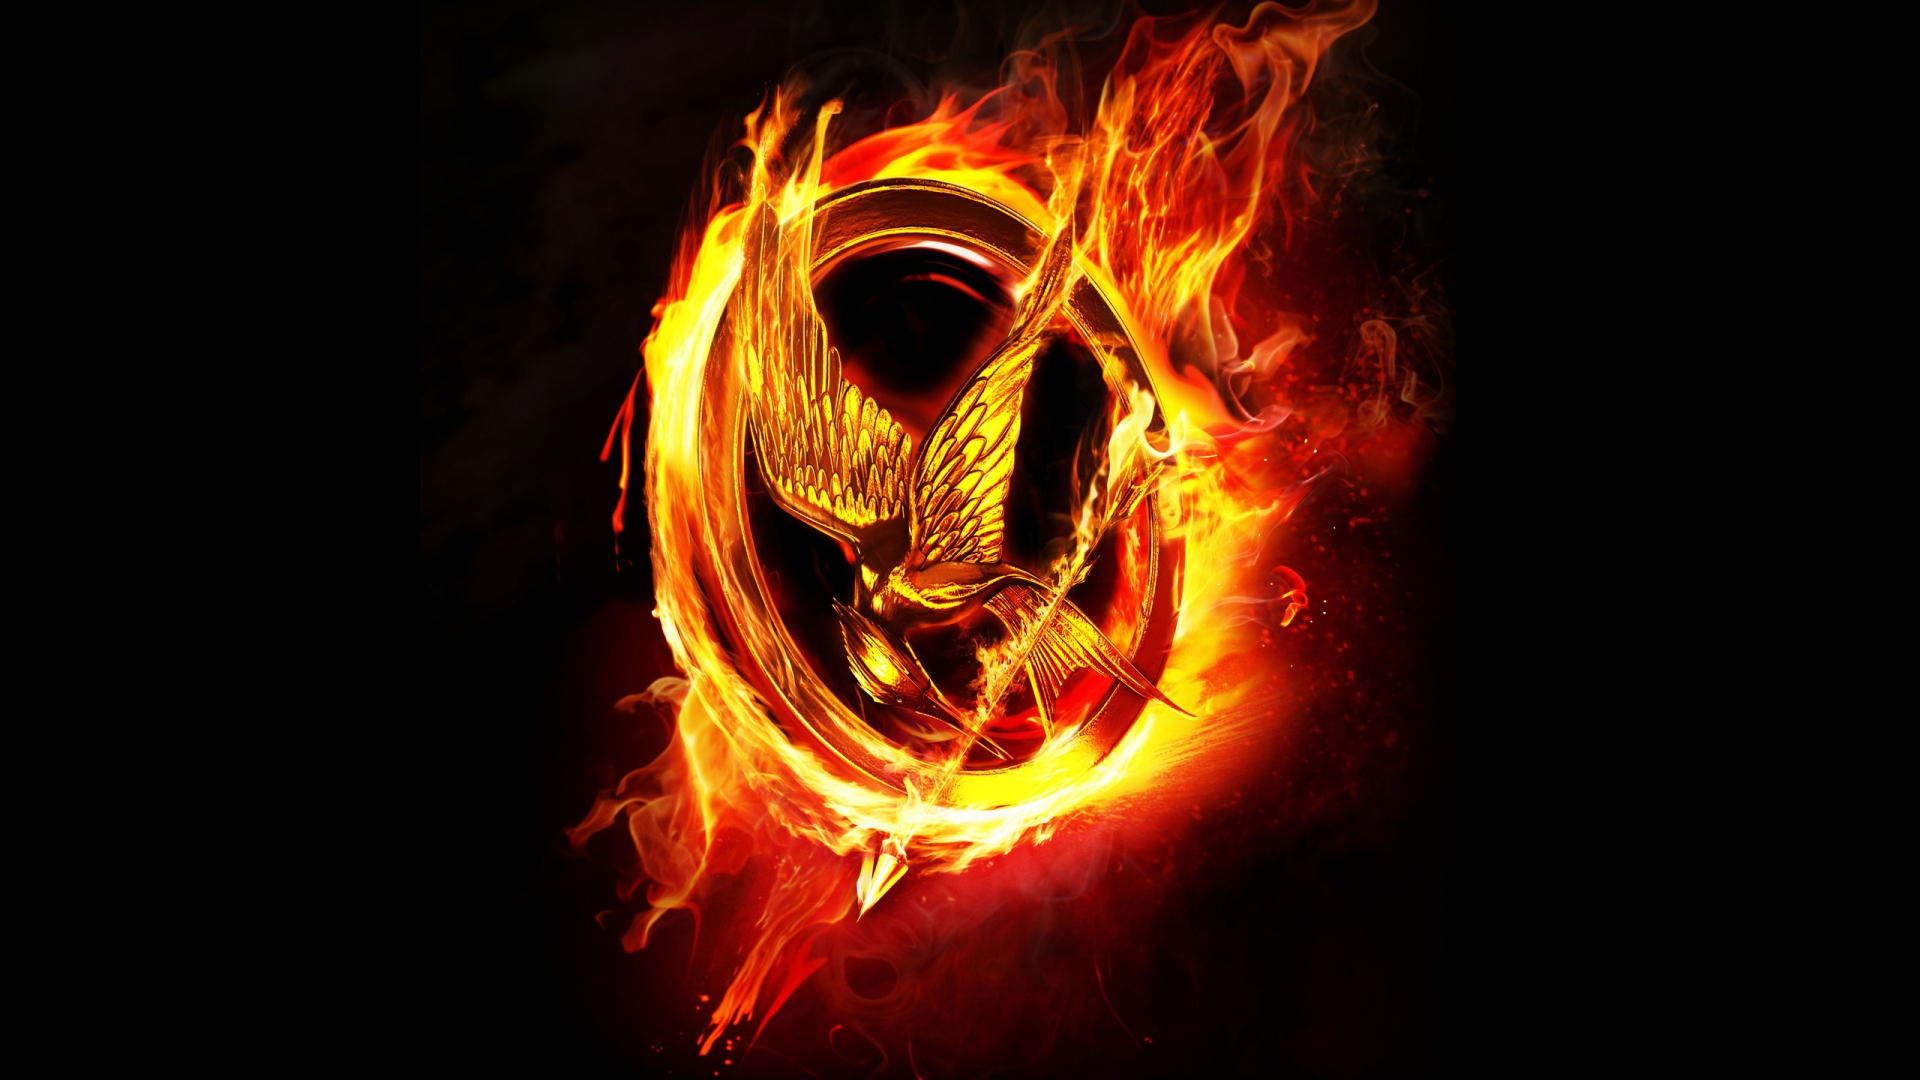 Image The Hunger Games Logo Hd Mobile 751968g The Hunger